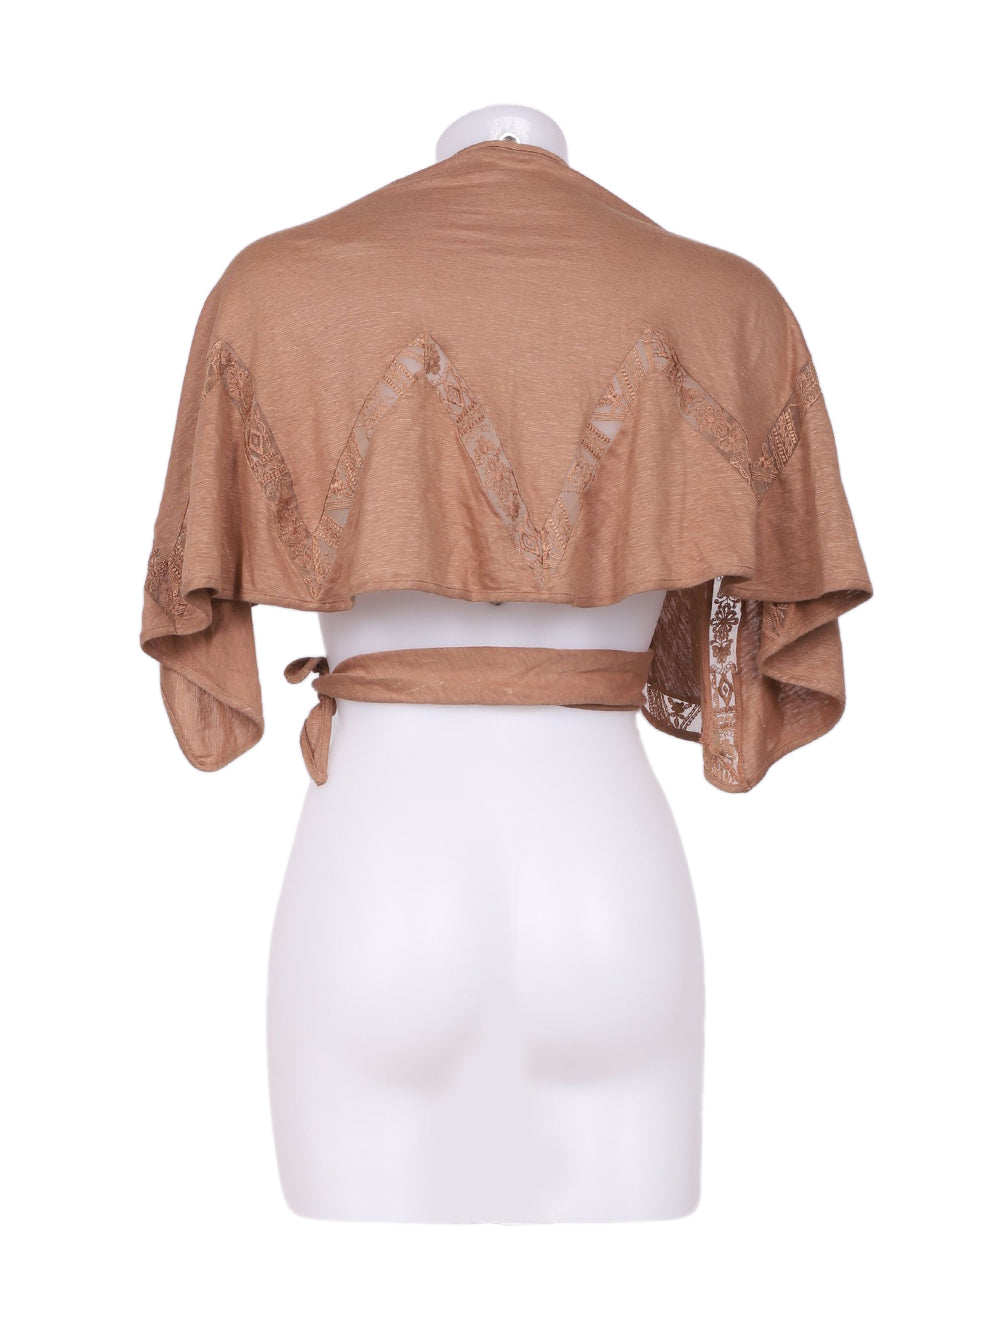 Back photo of Preloved La Perla Brown Woman's bolero - size 12/L